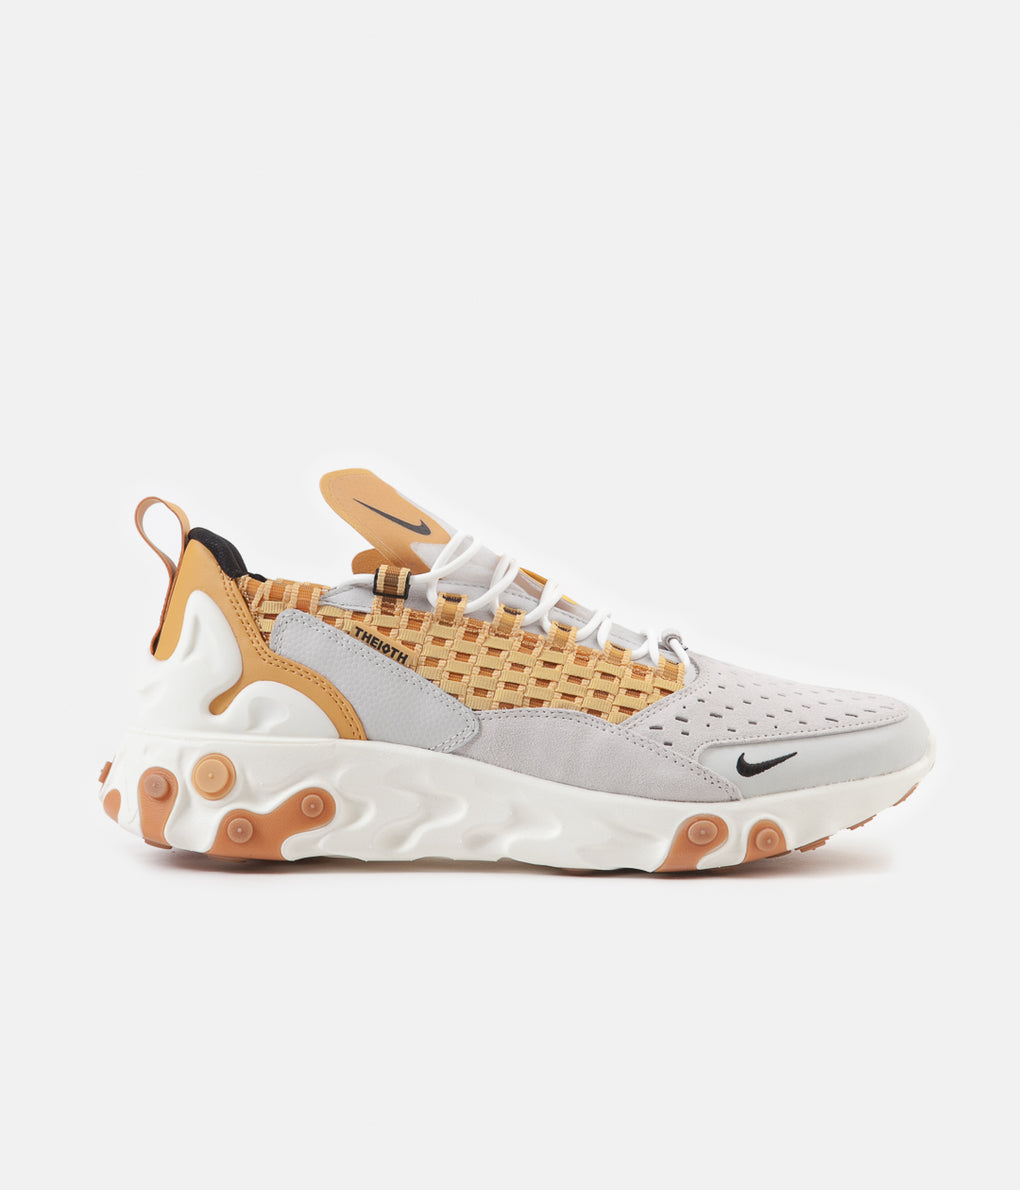 Nike React Sertu Shoes - Vast Grey / Black - Light Smoke Grey - Honeycomb